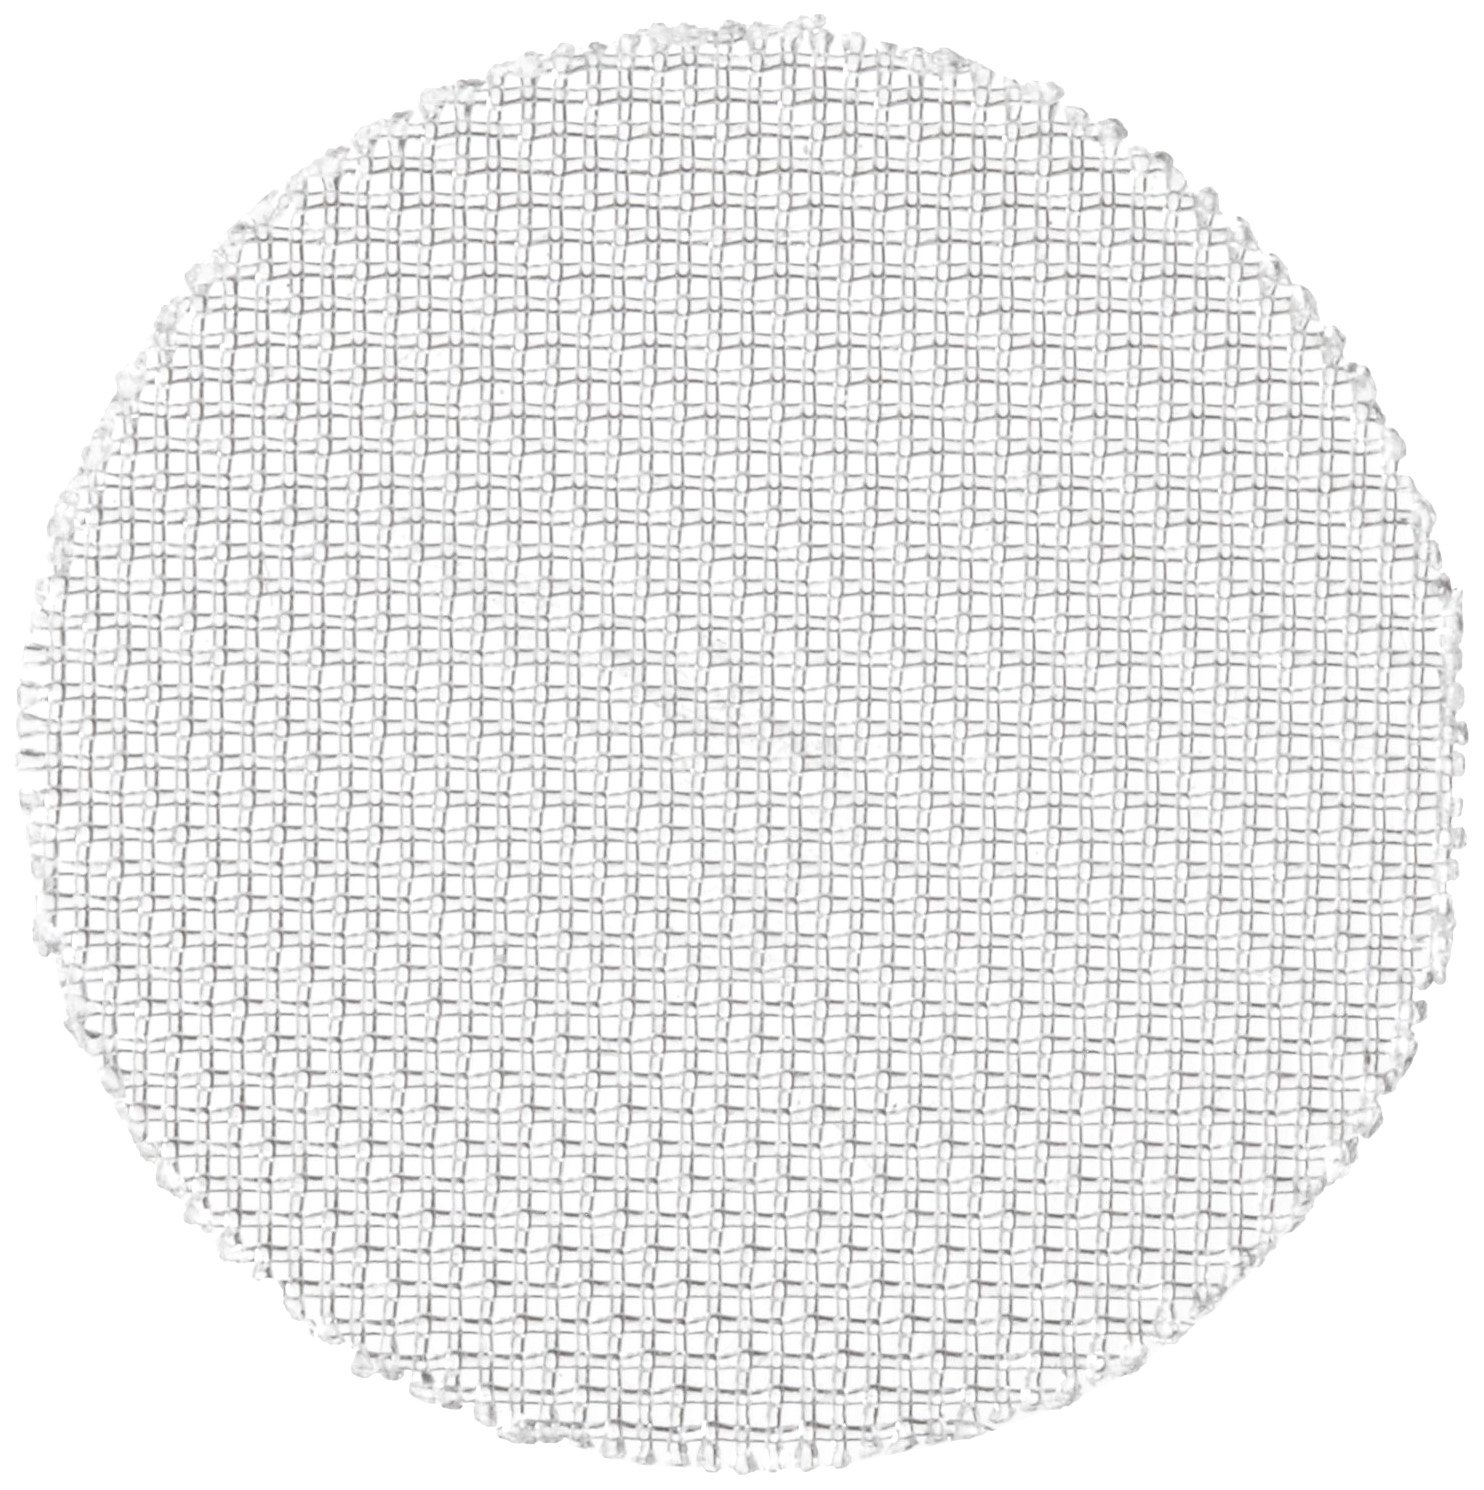 Nylon 6/6 Woven Mesh Round, Opaque Off-White, 1/2'' OD, 36 microns Mesh Size, 28% Open Area (Pack of 100)